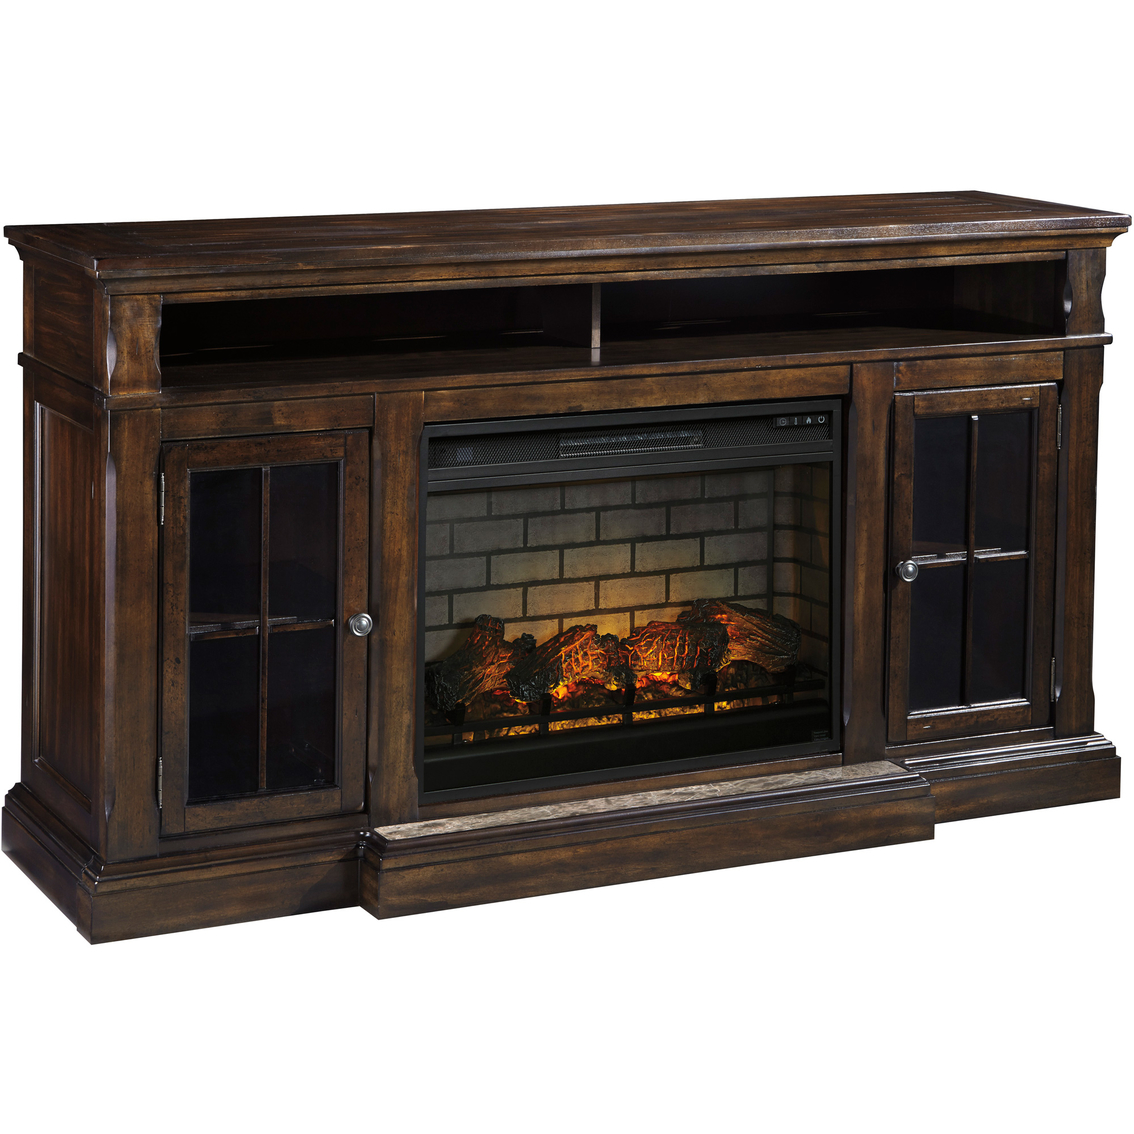 Candles For Fireplace Insert Ashley Roddinton Tv Stand With Fireplace Insert Media Furniture